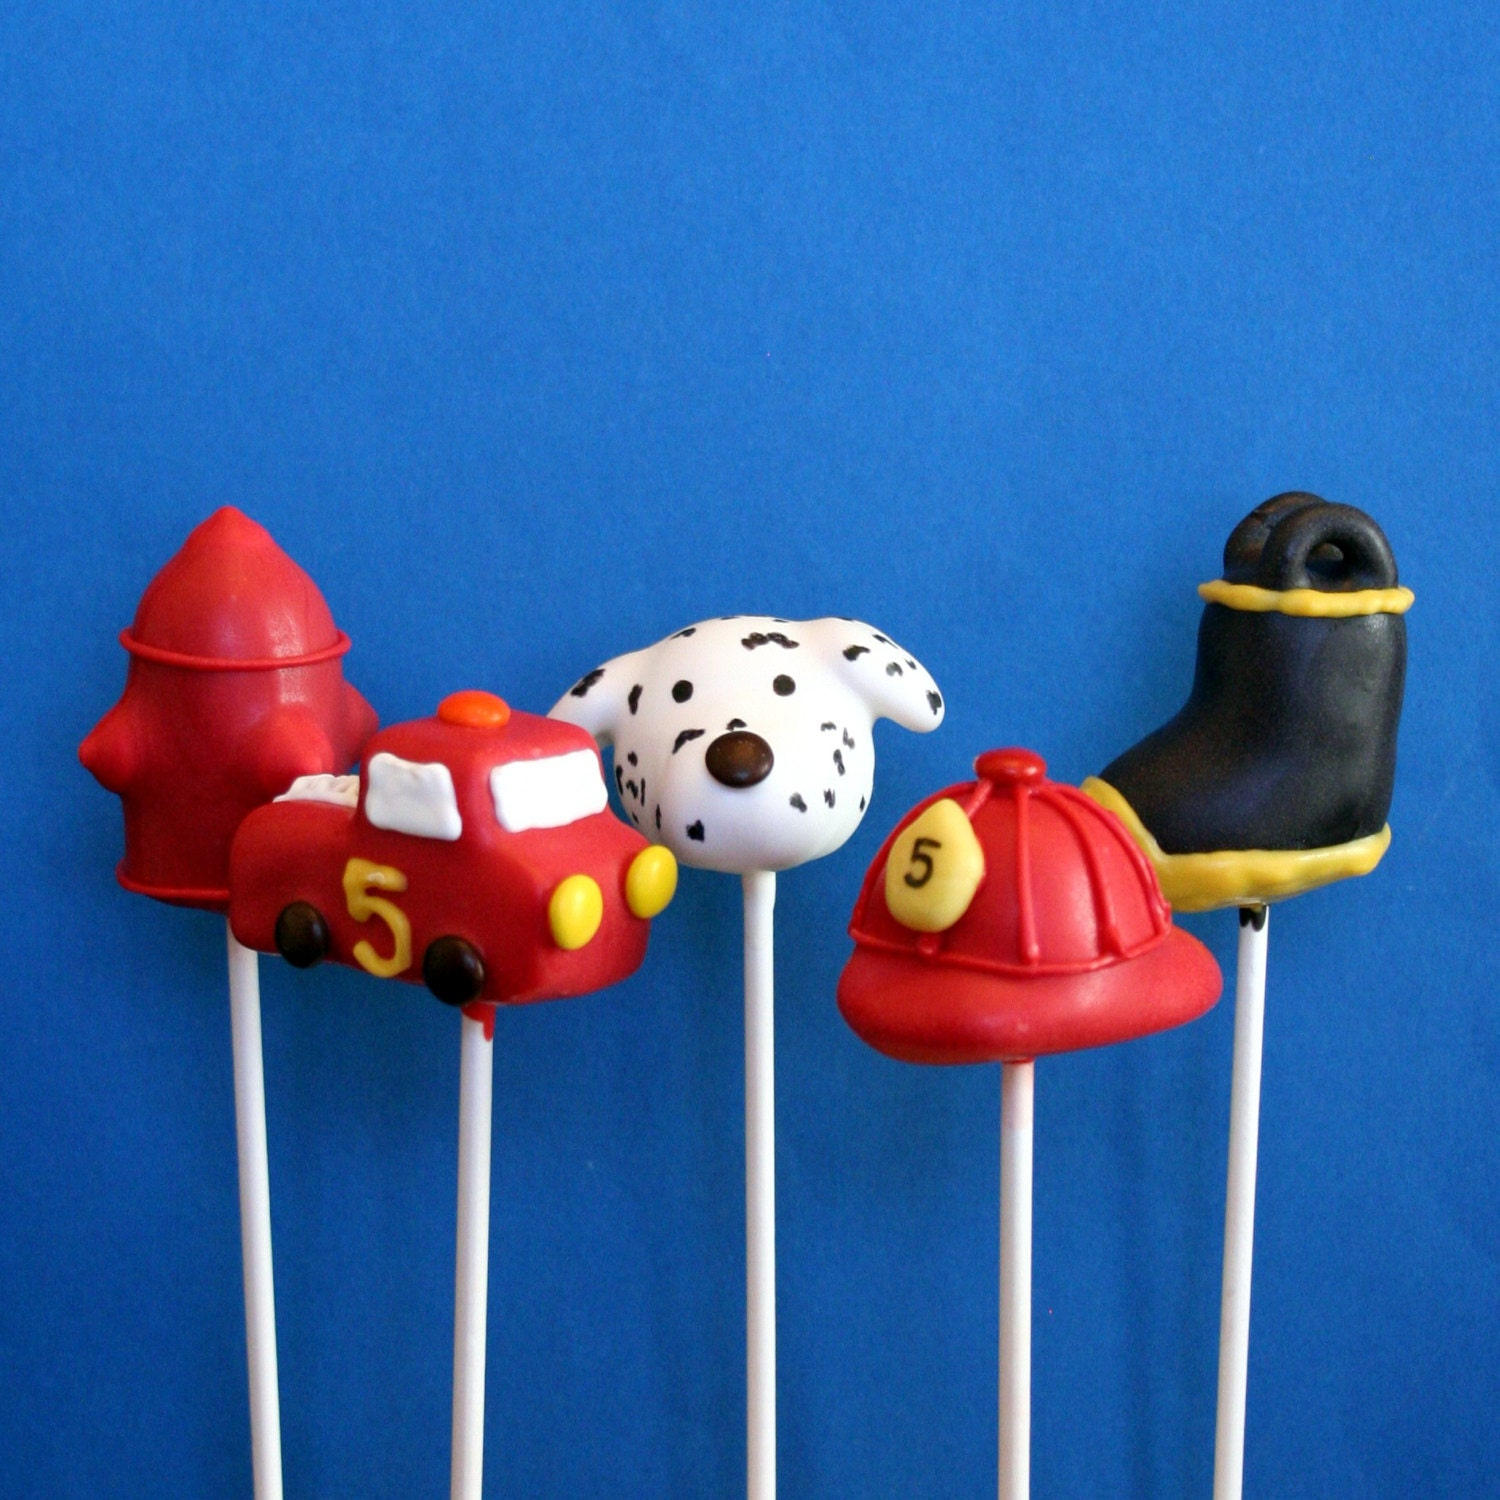 20 Firefighter Cake Pop Assortment With Fire By